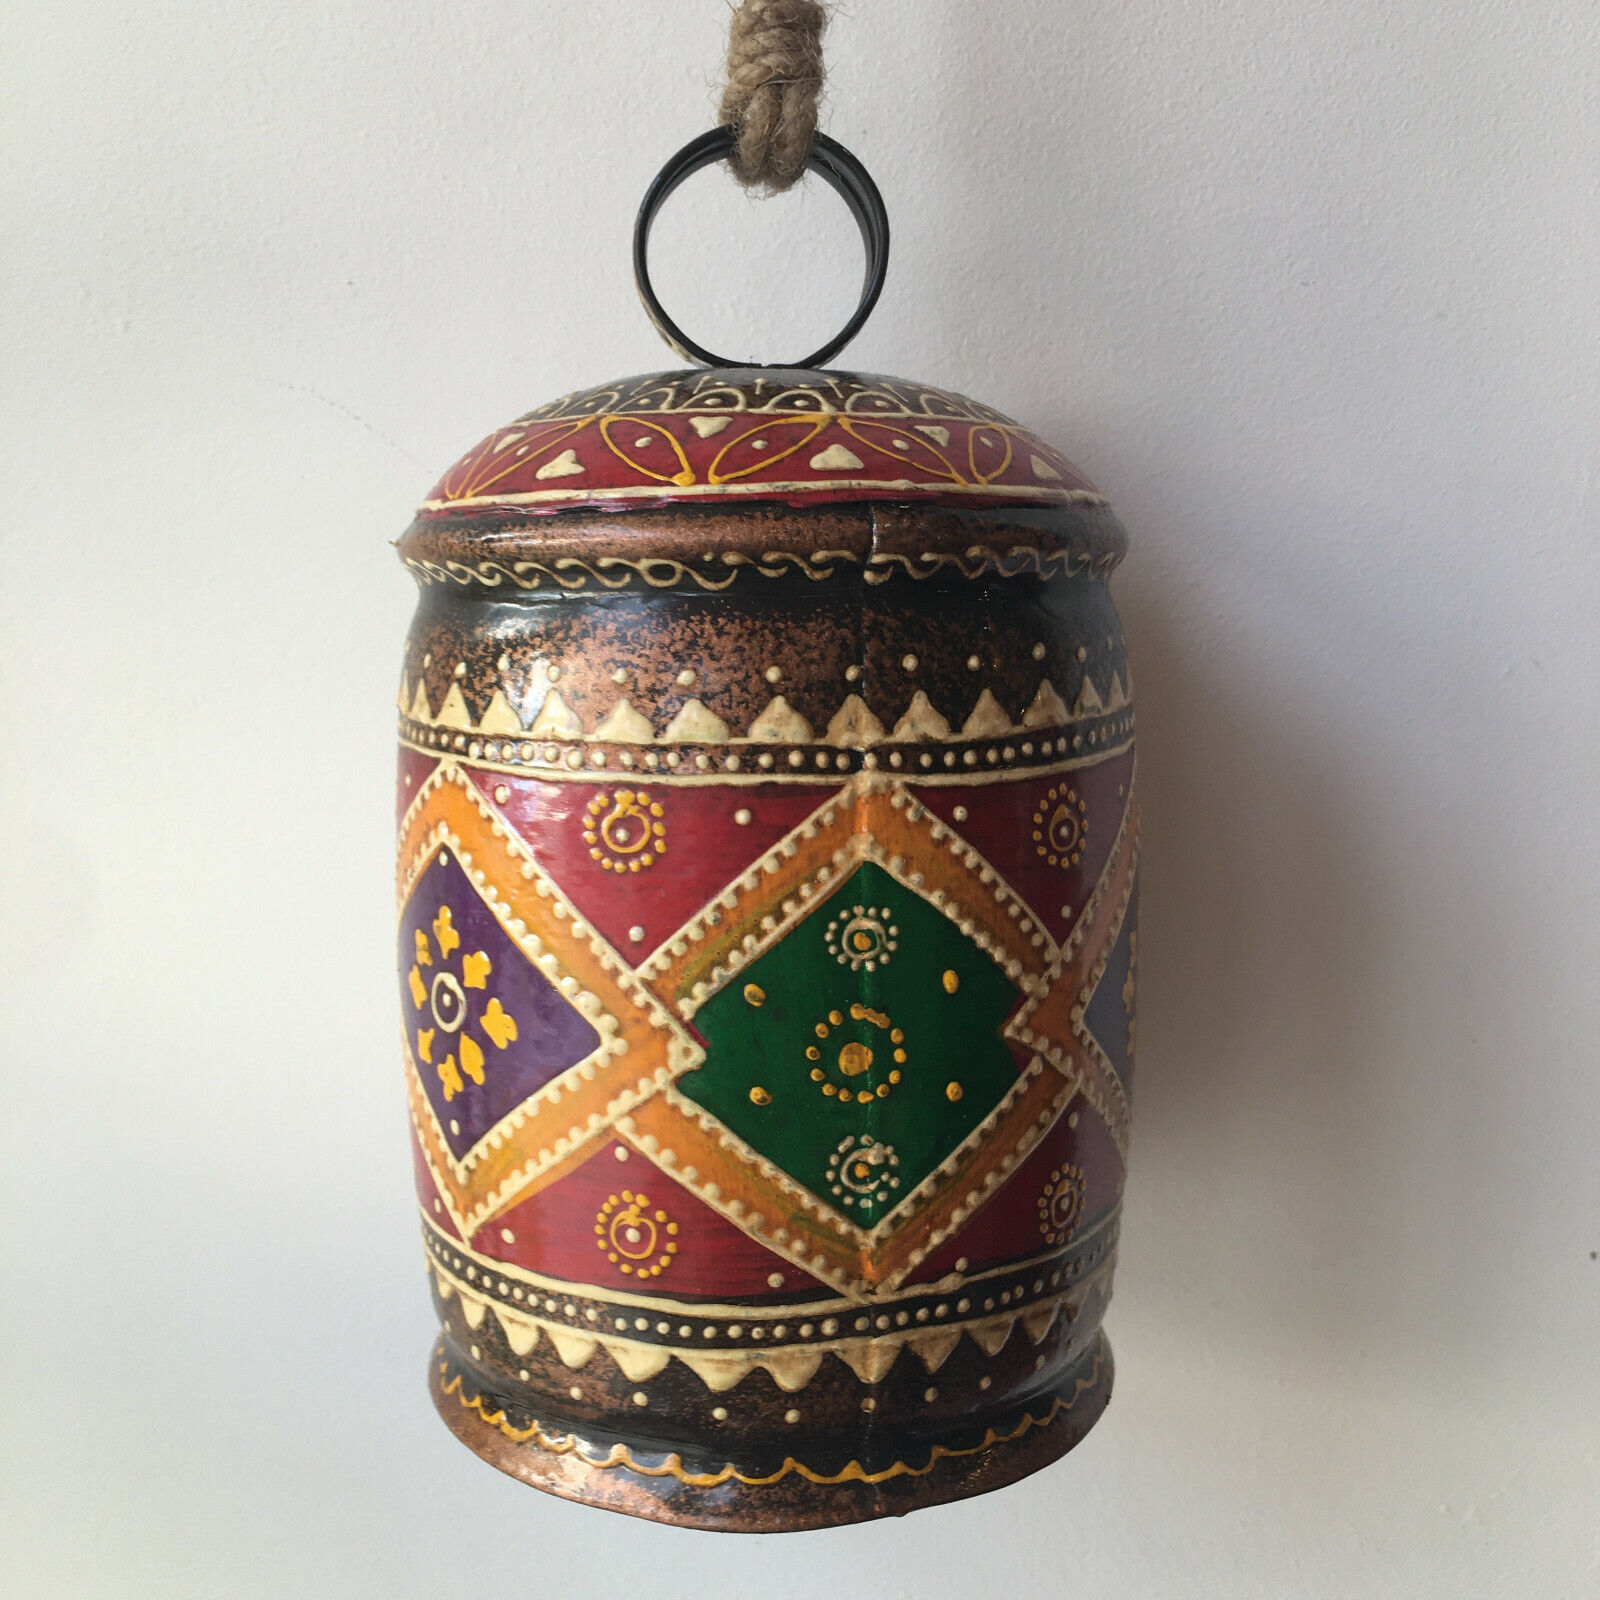 INDIAN HAND PAINTED METAL COW BELL Handmade WIND CHIME Cowbell BOHO GARDEN A